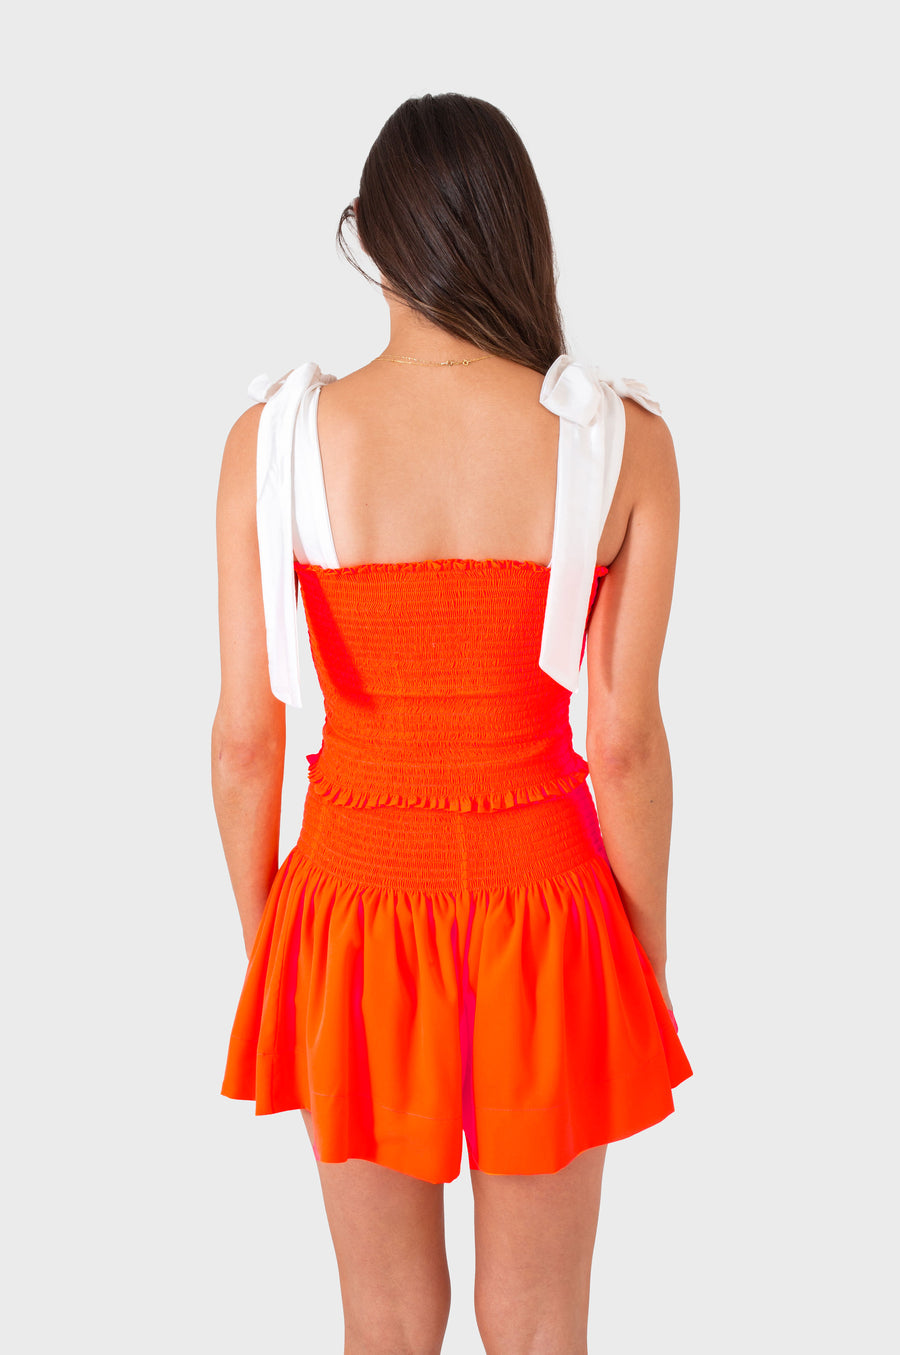 CECE TOP NEON ORANGE *LIMITED*EDITION*